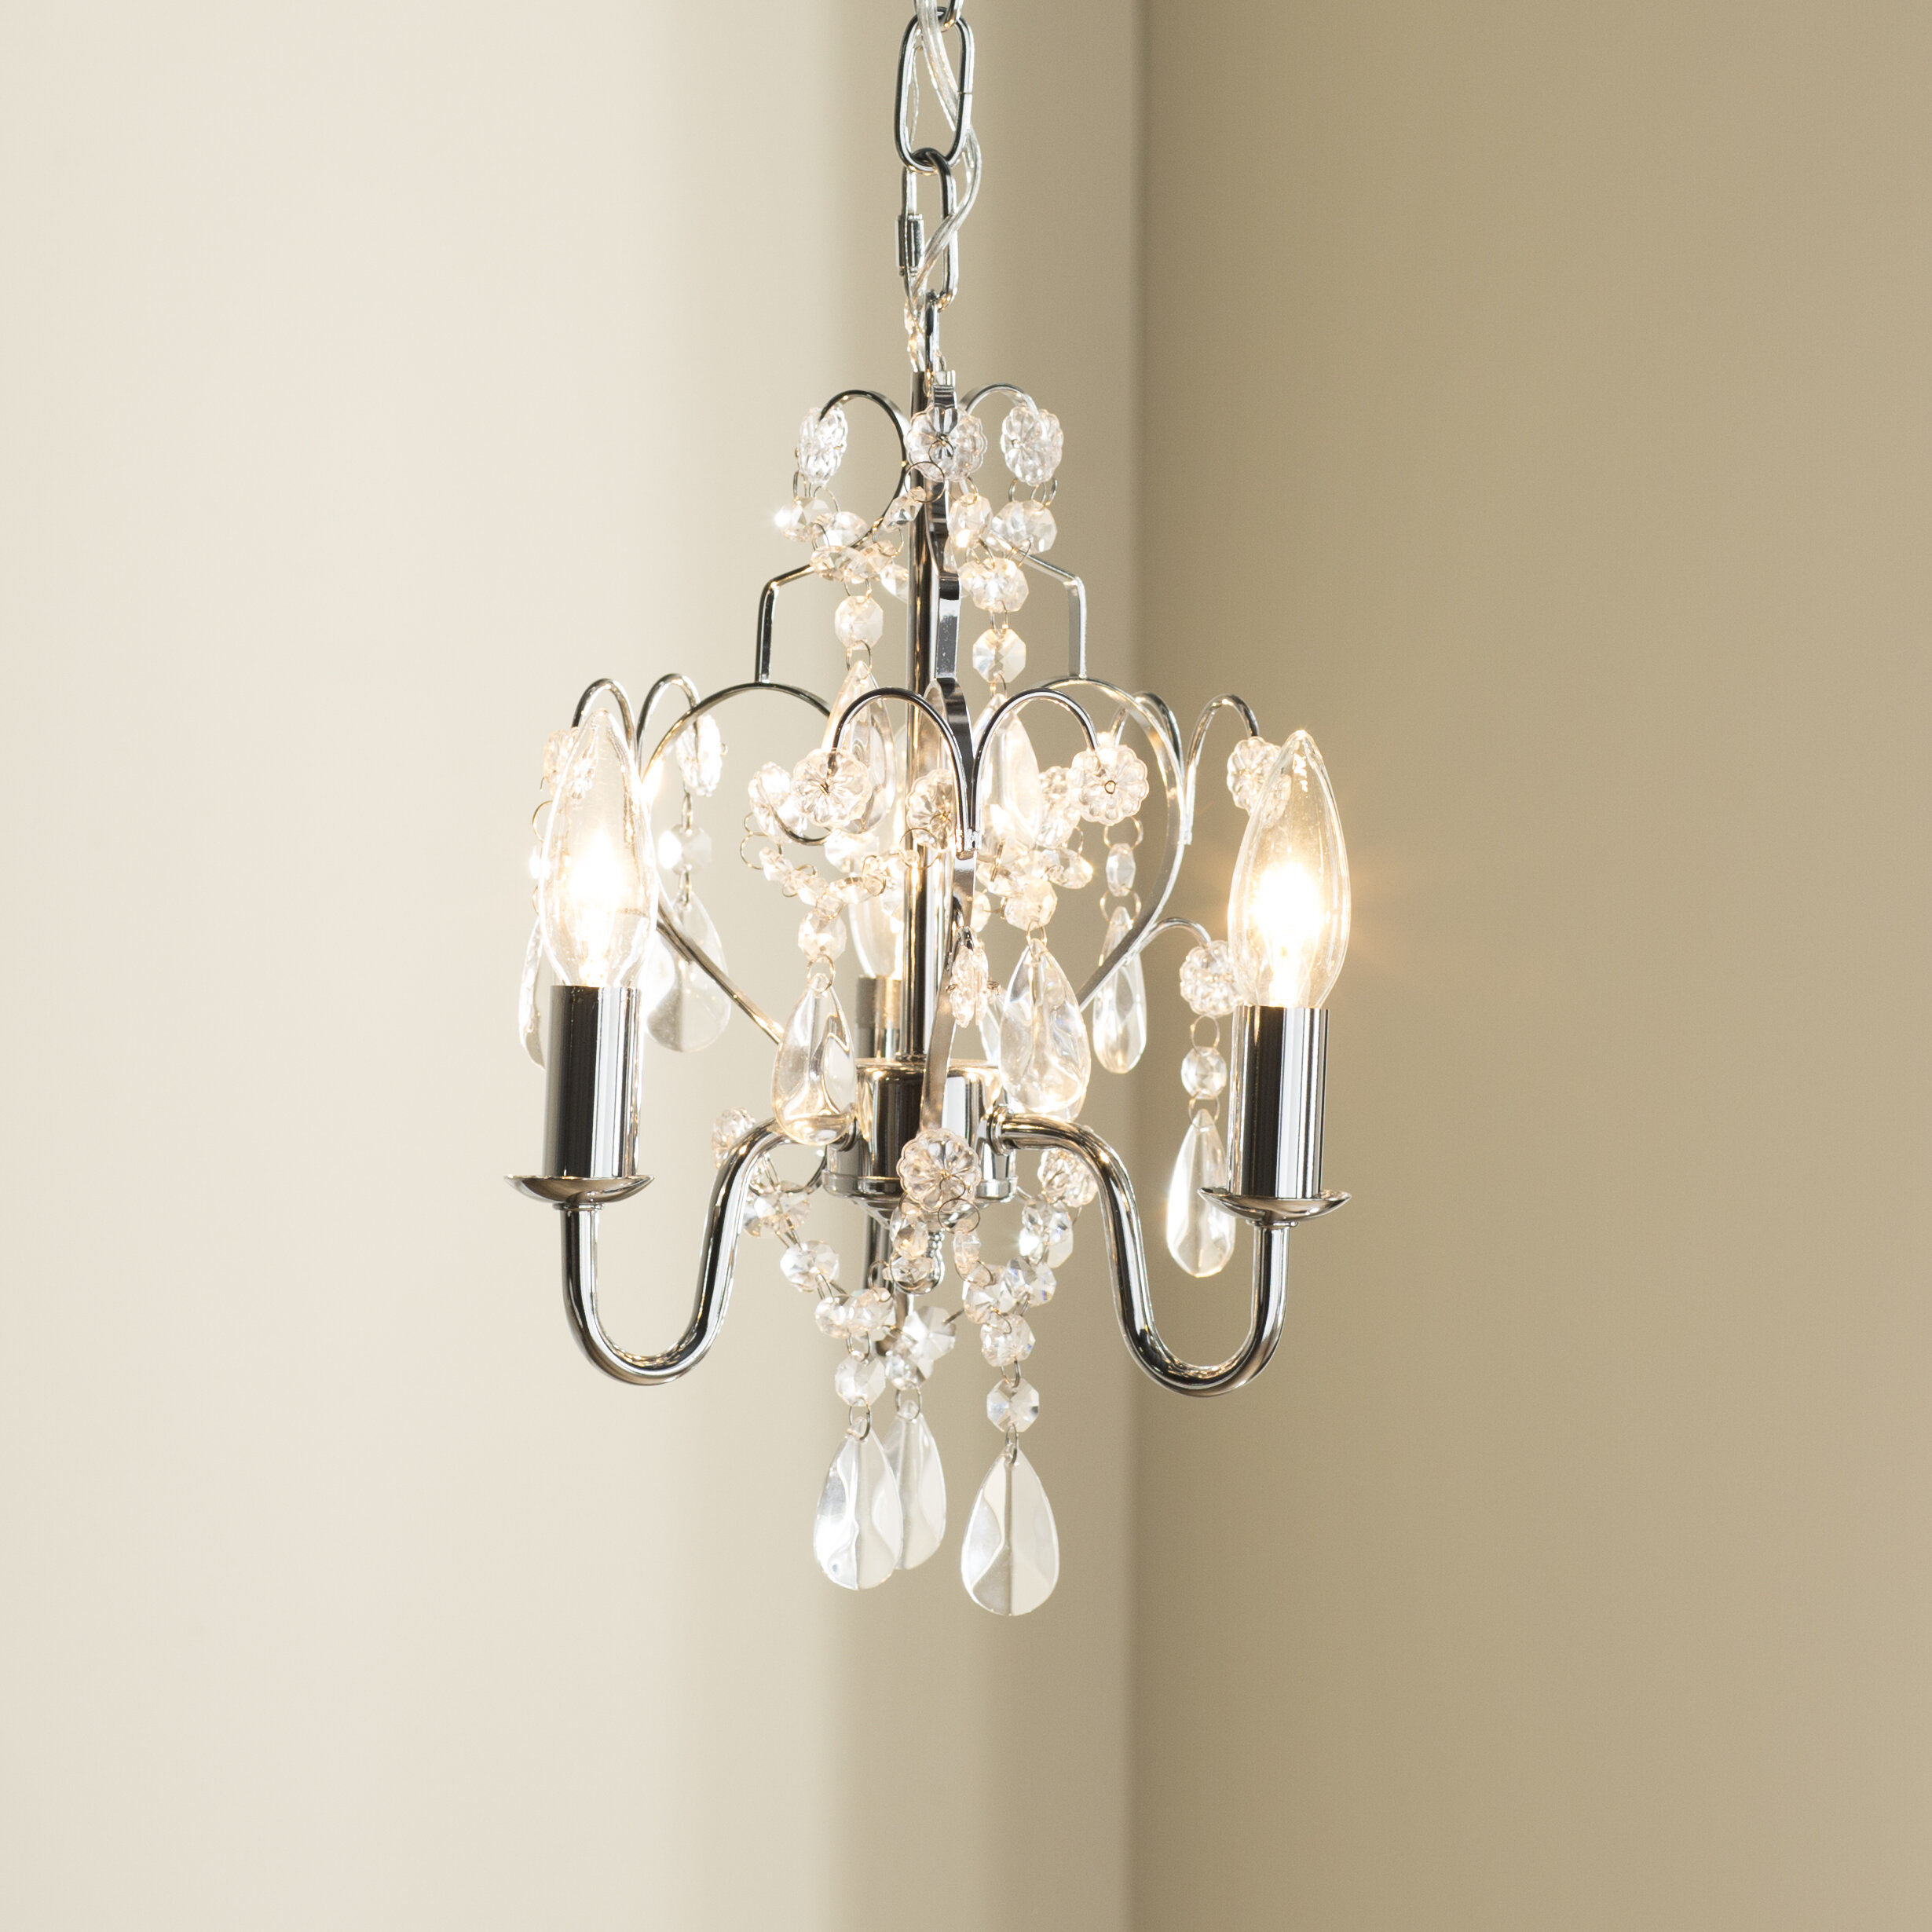 House Of Hampton Dagnall 3 Light Candle Style Chandelier Reviews Wayfair